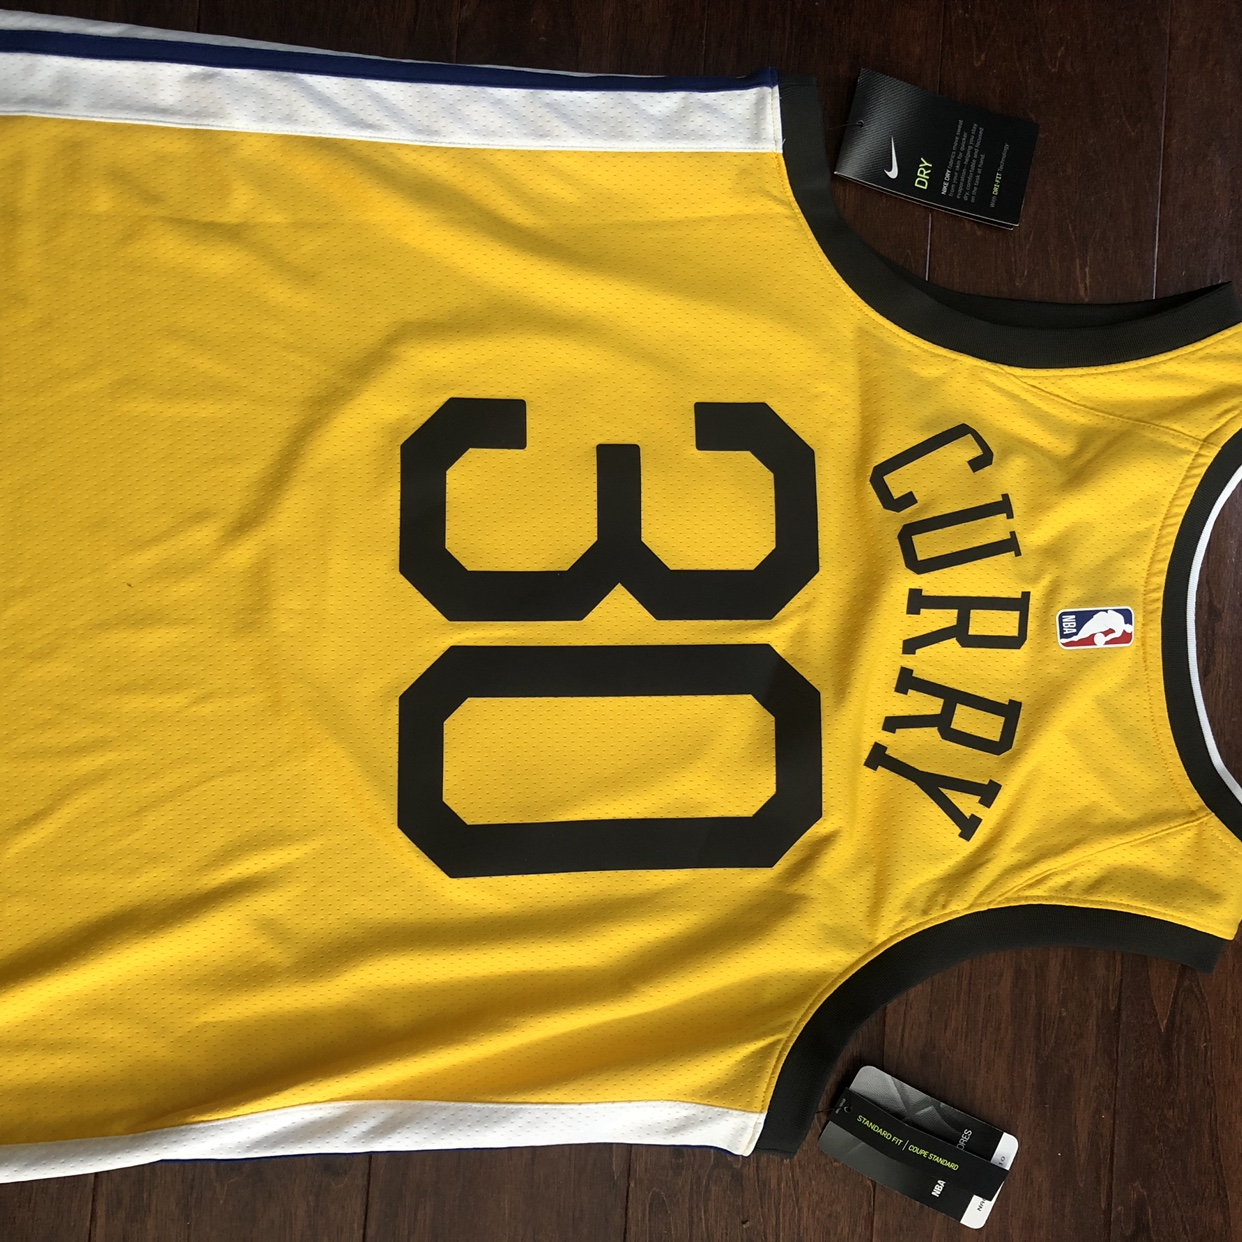 info for ba944 9c6c7 Yellow curry jersey never worn 10/10 condition with... - Depop